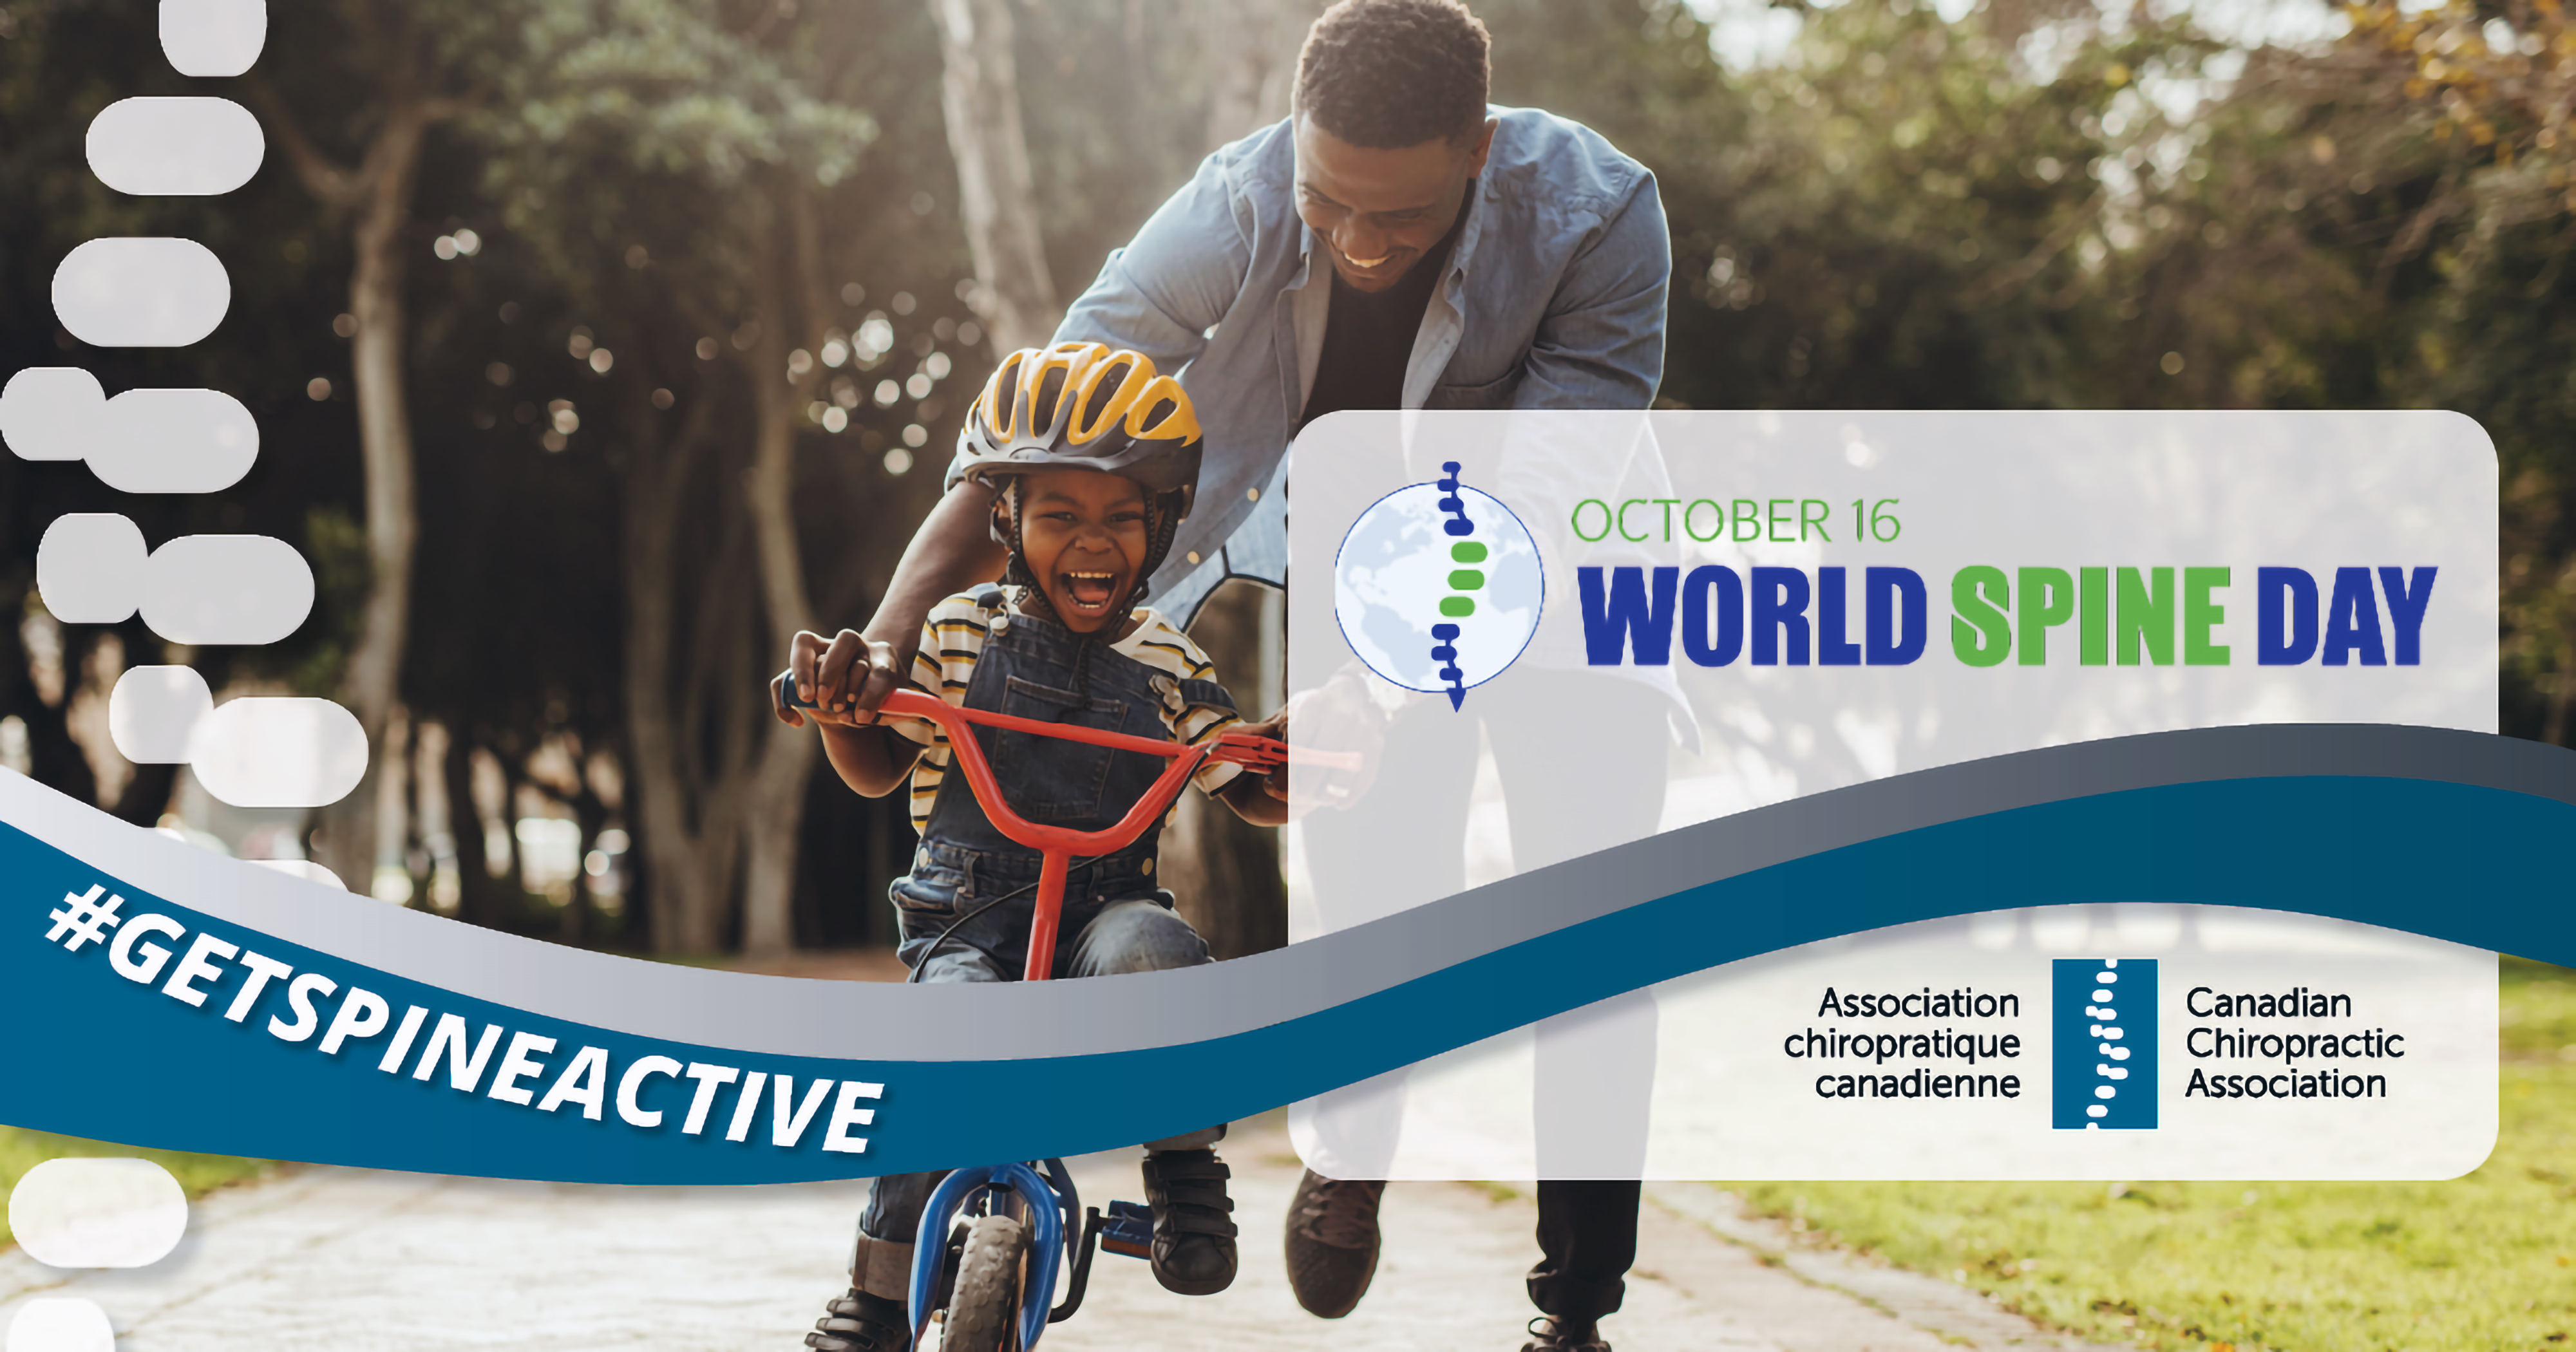 The theme for World Spine Day 2019 is GetSpineActive